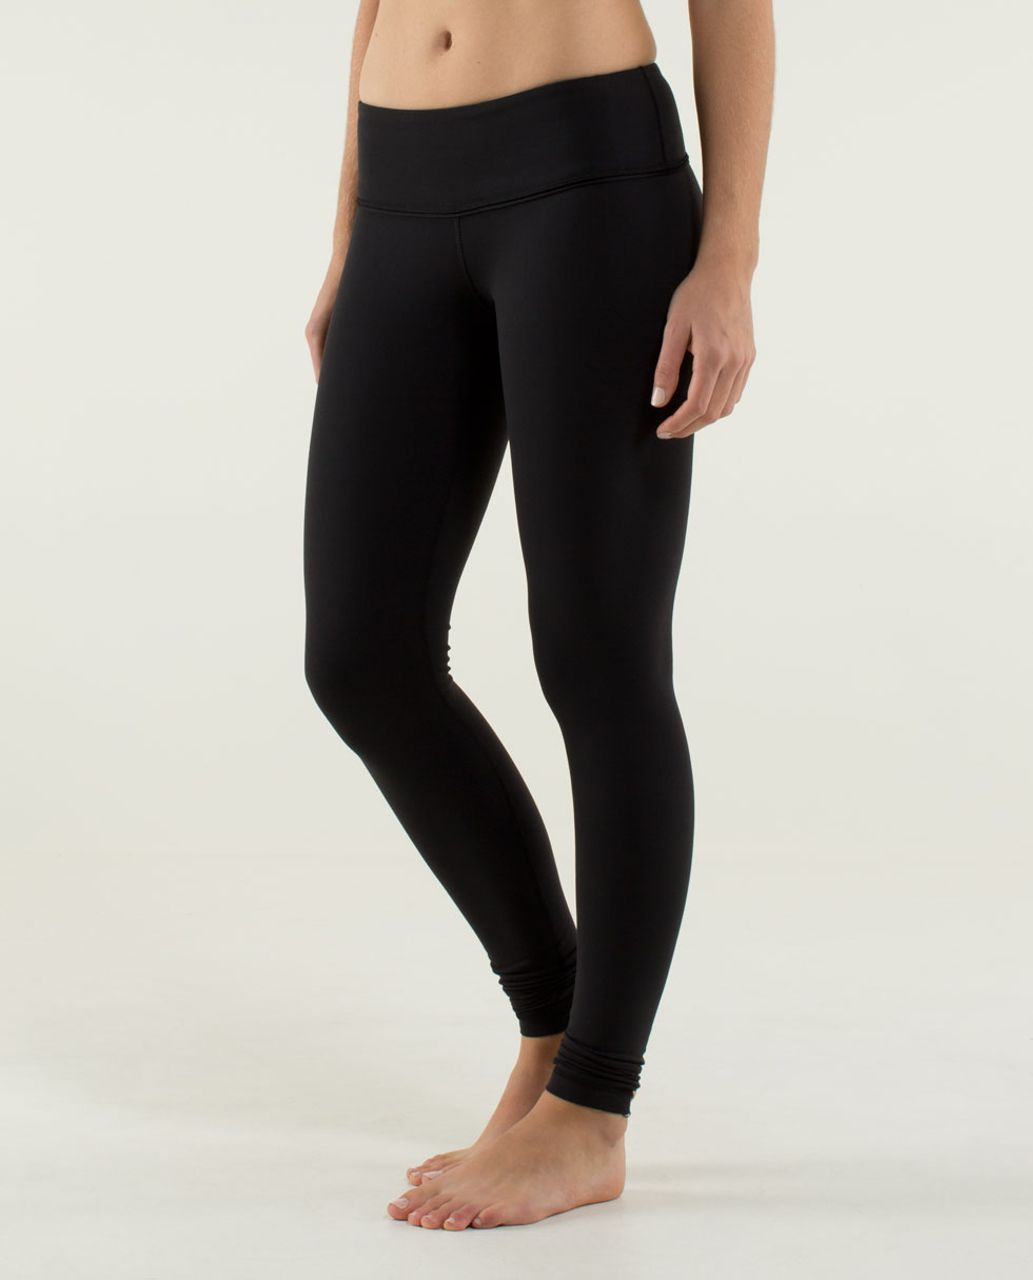 Lululemon Wunder Under Pant *Brushed (Second Release) - Black